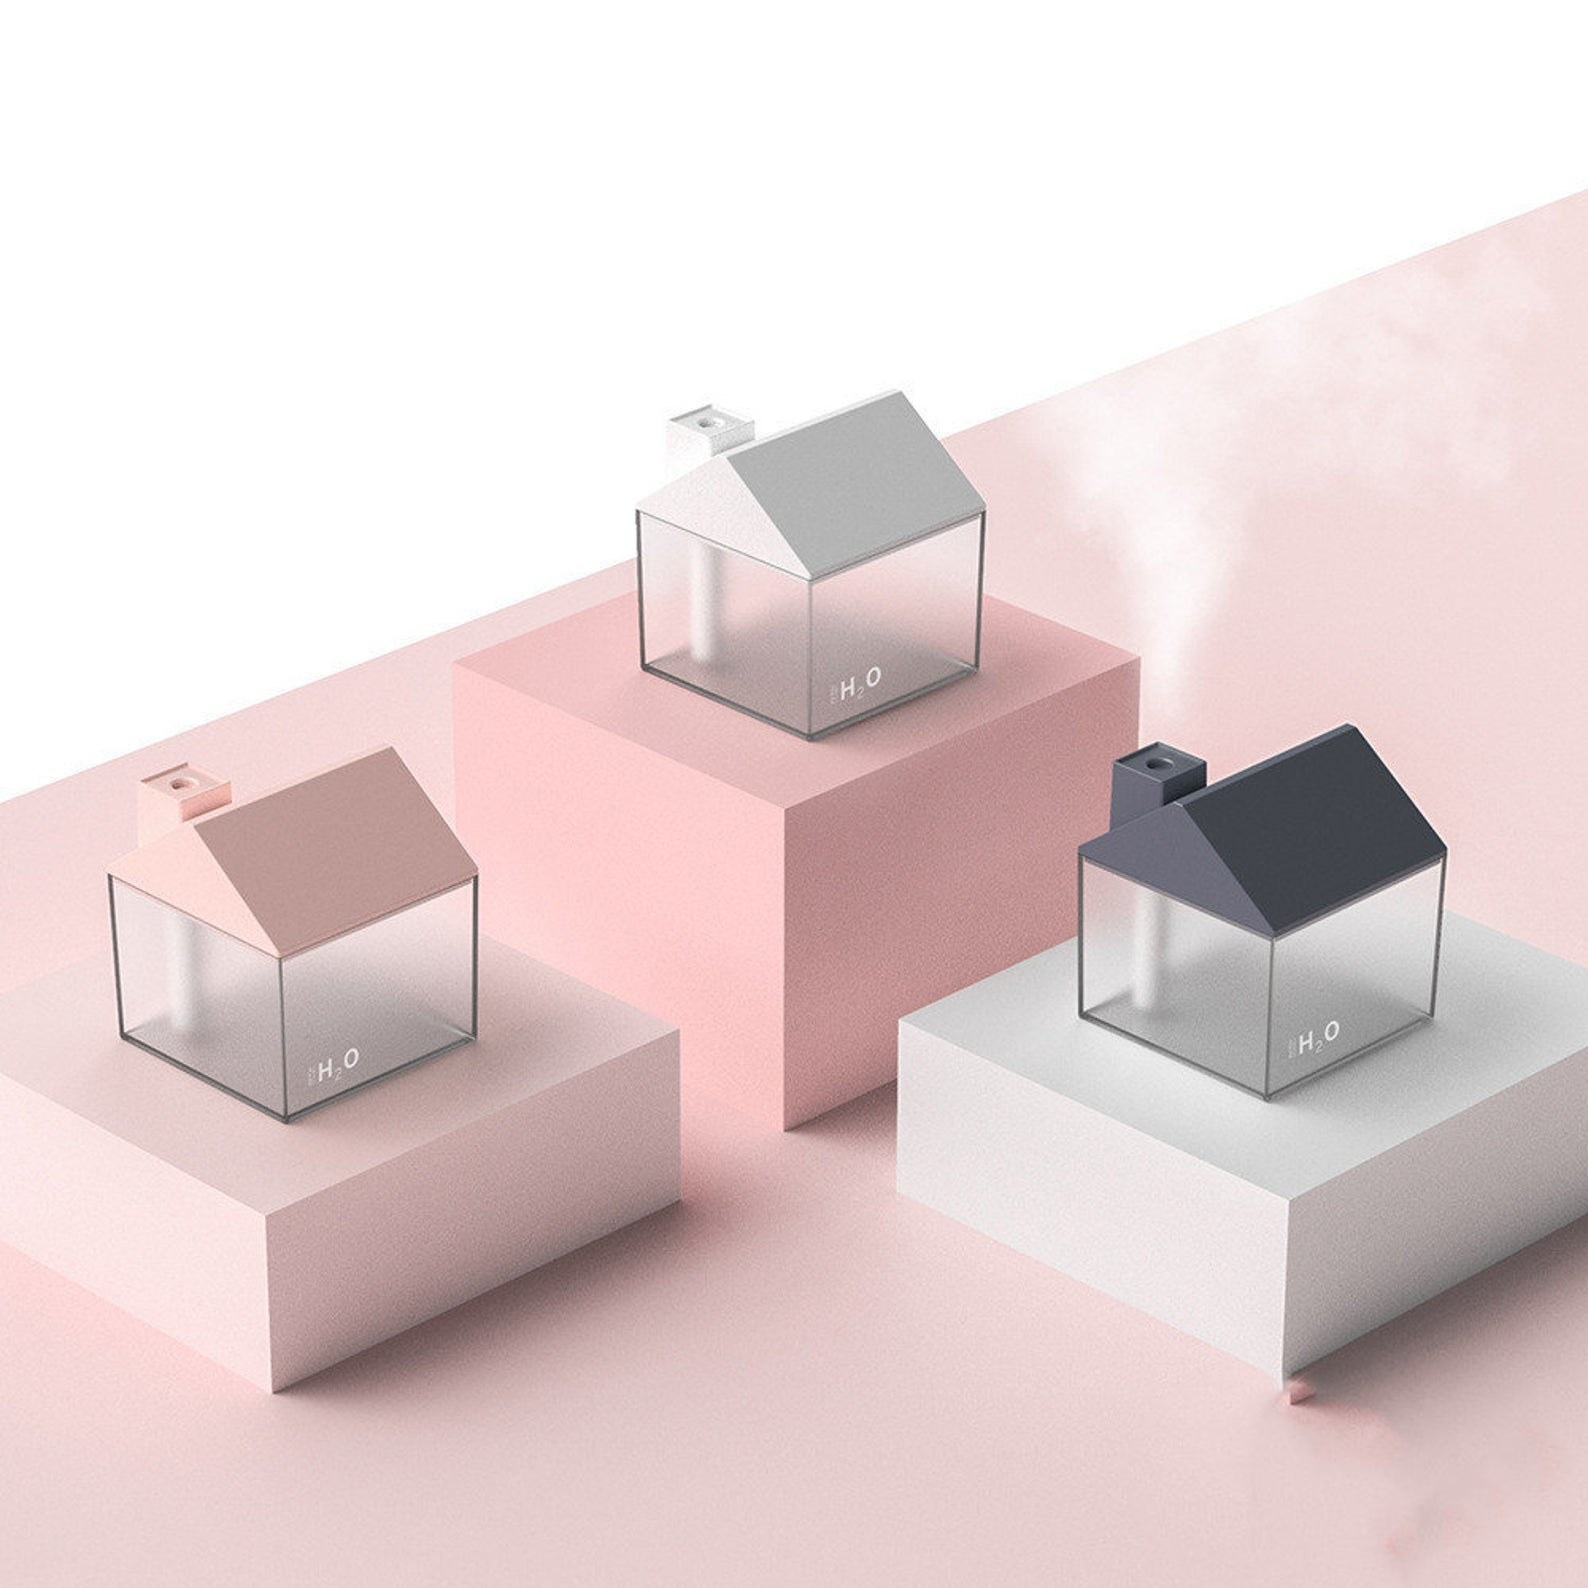 The pink, white, and blue oil diffusers which are house shaped